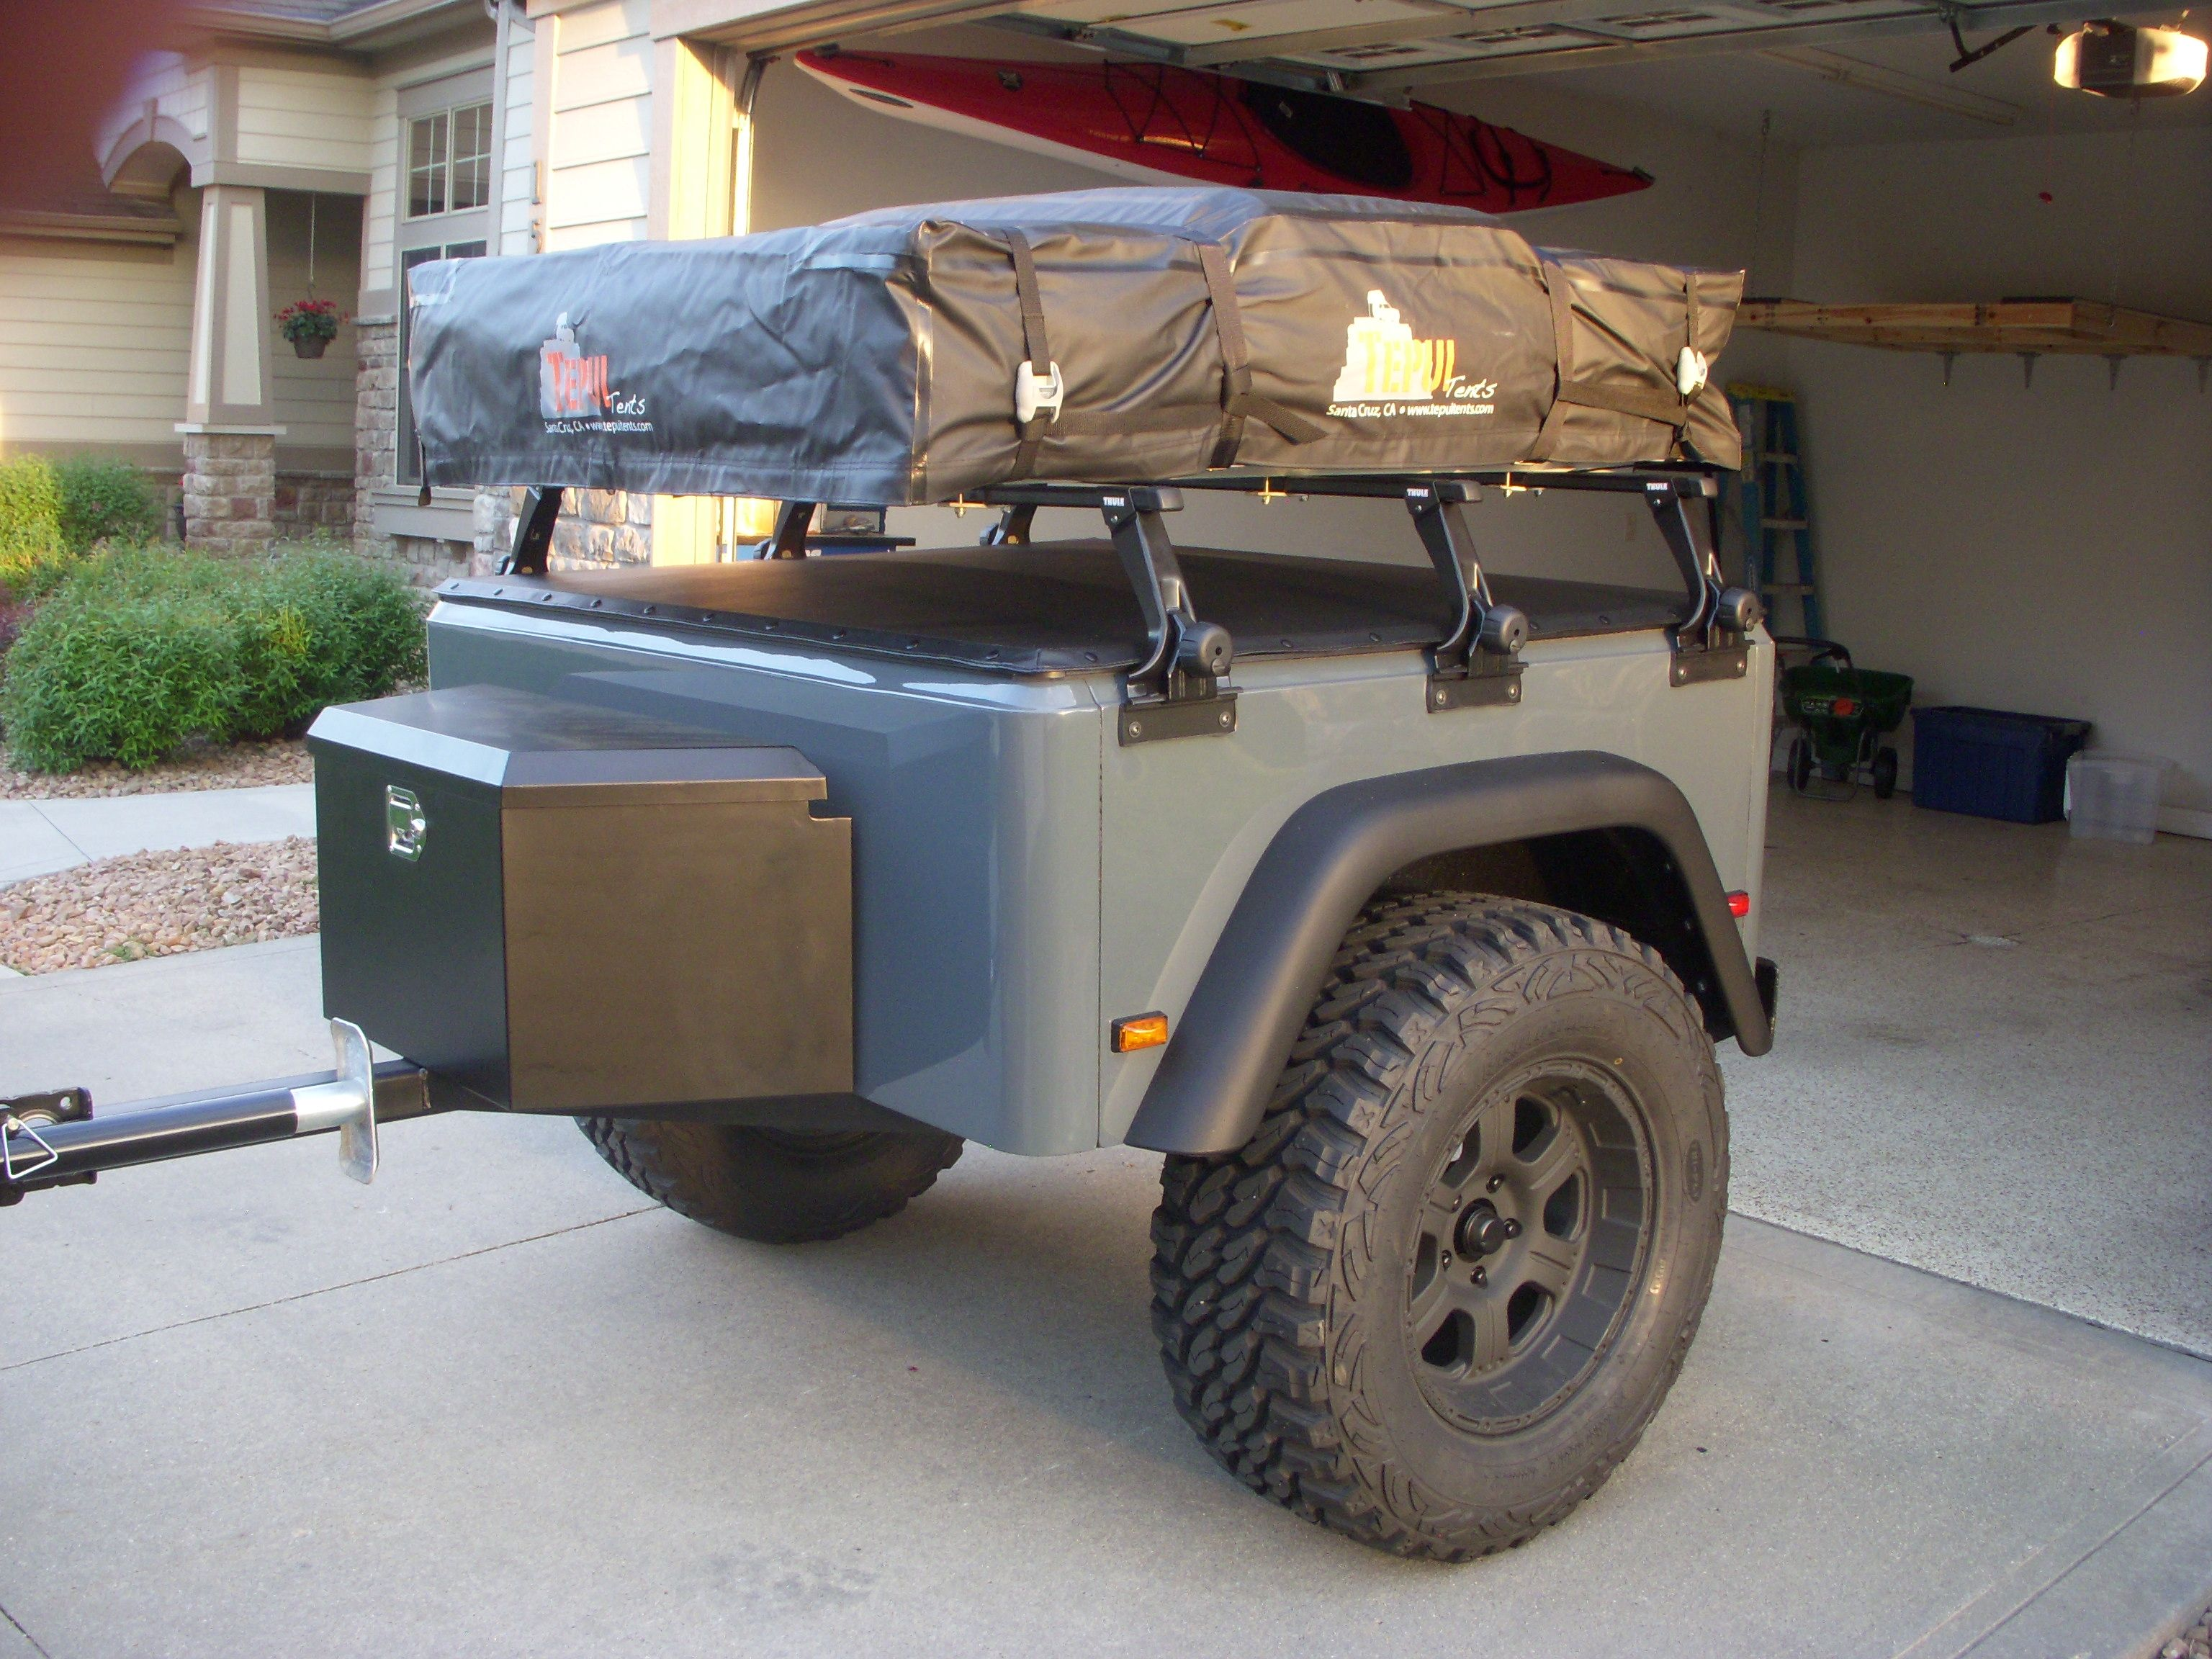 How To Build A Jeep Trailer Step 5a The Final Build Step Is